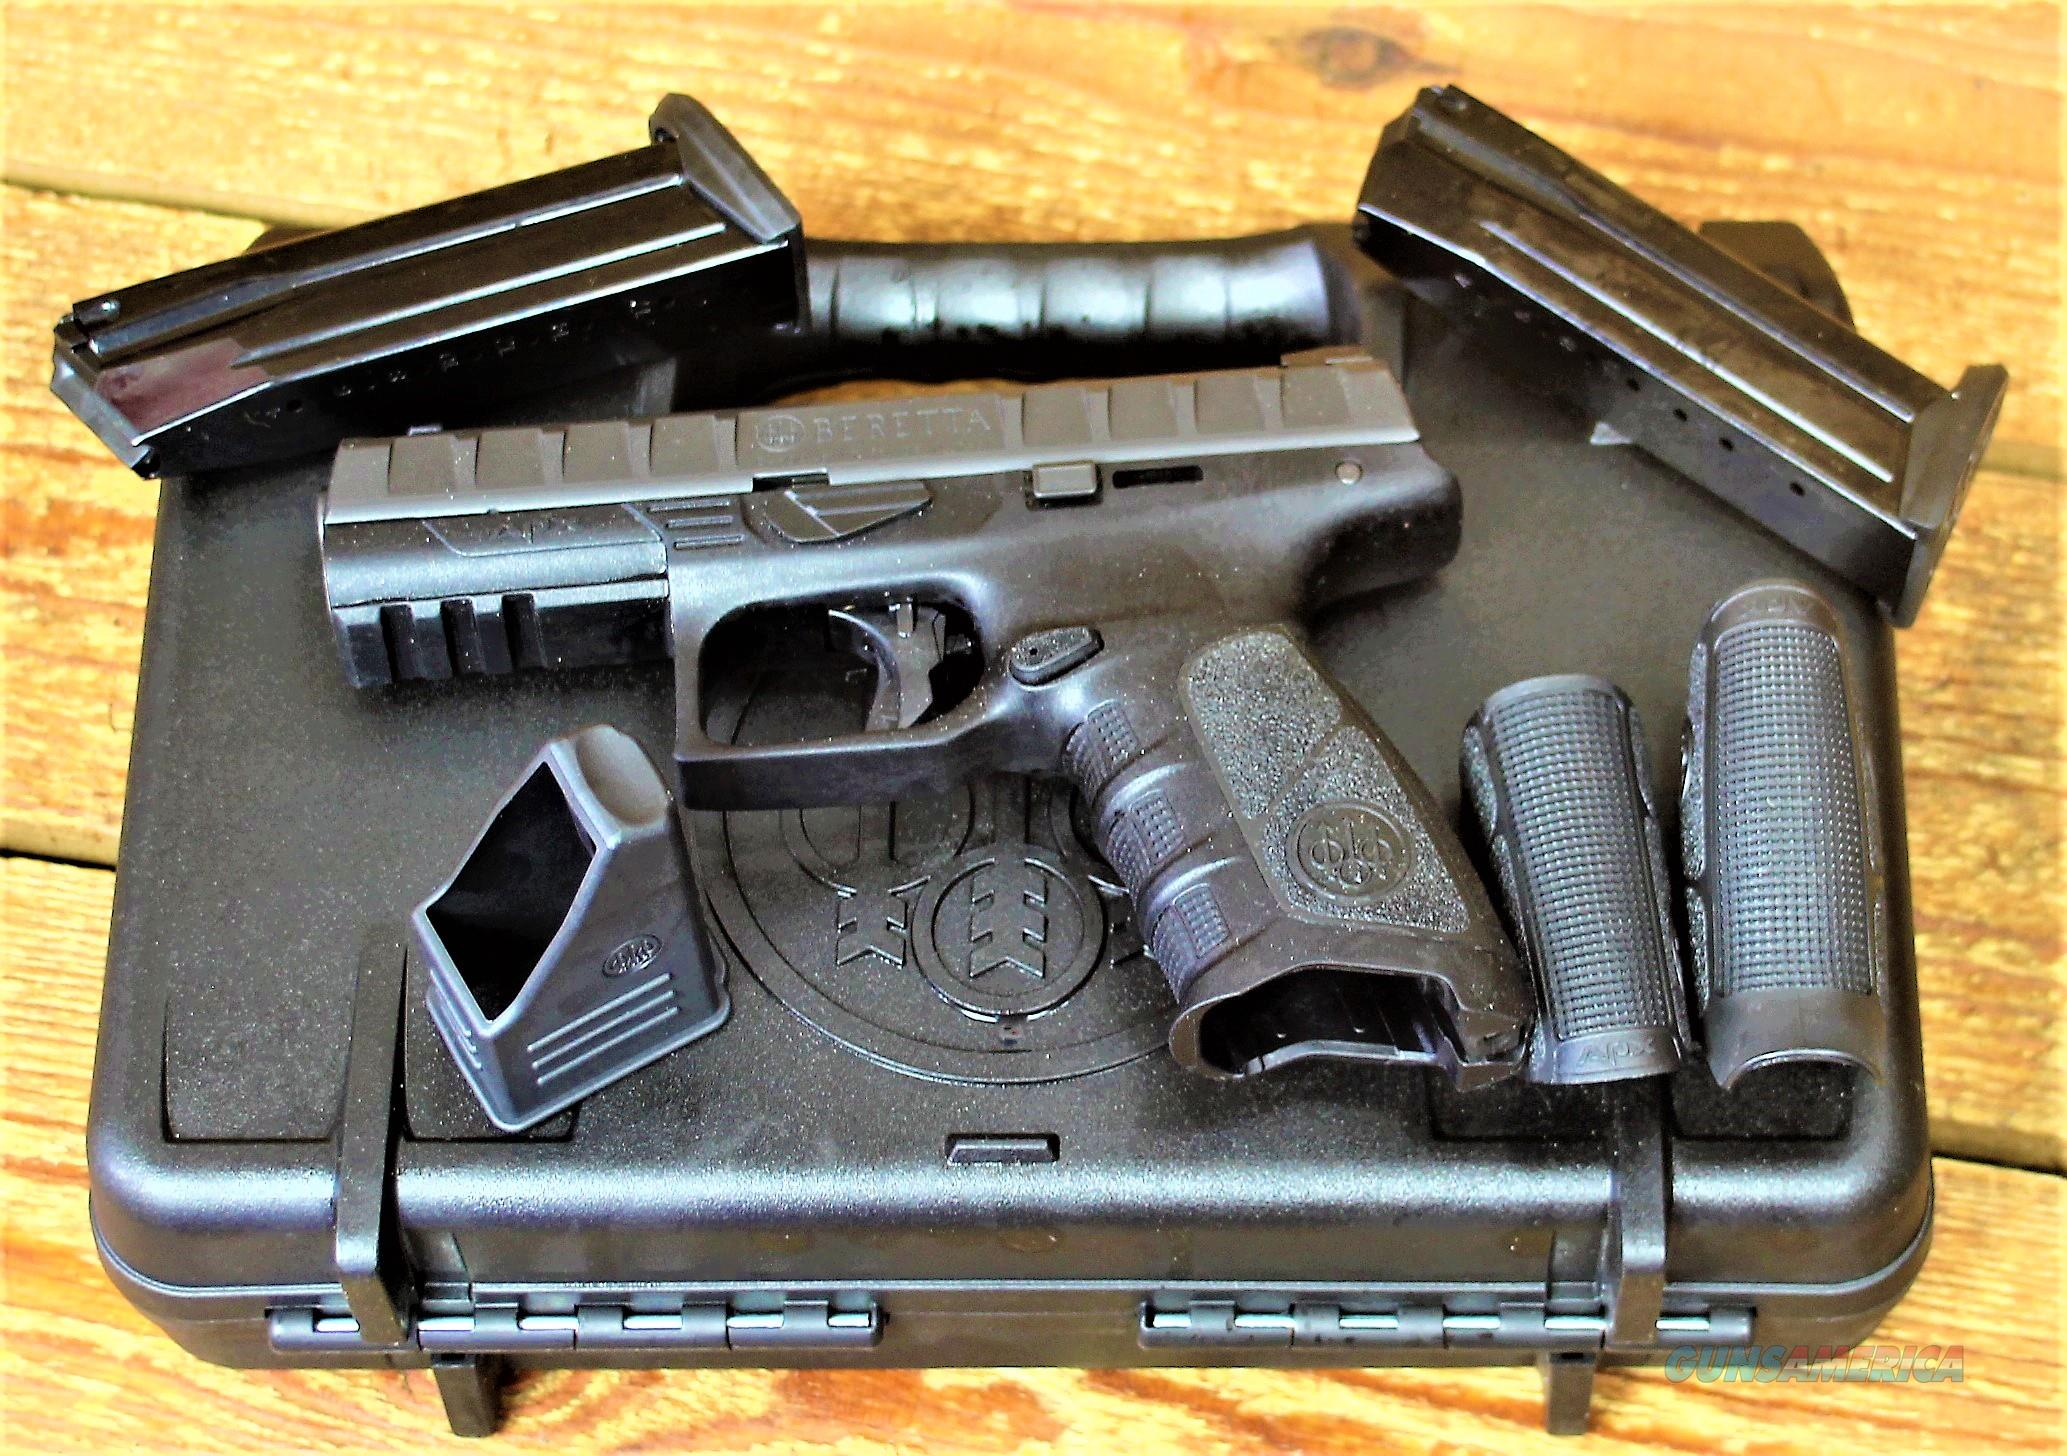 """1. EASY PAY $46 DOWN LAYAWAY Beretta Model APX Conceal & Carry picatinny Rail AD Accessory Full size   17 SHOT 9mm 4.25"""" Barrel Unloaded WEIGHT  26.8 OZ 17 Rounds Black Polymer Frame slide stop JAXF921  Guns > Pistols > Beretta Pistols > Polymer Frame"""